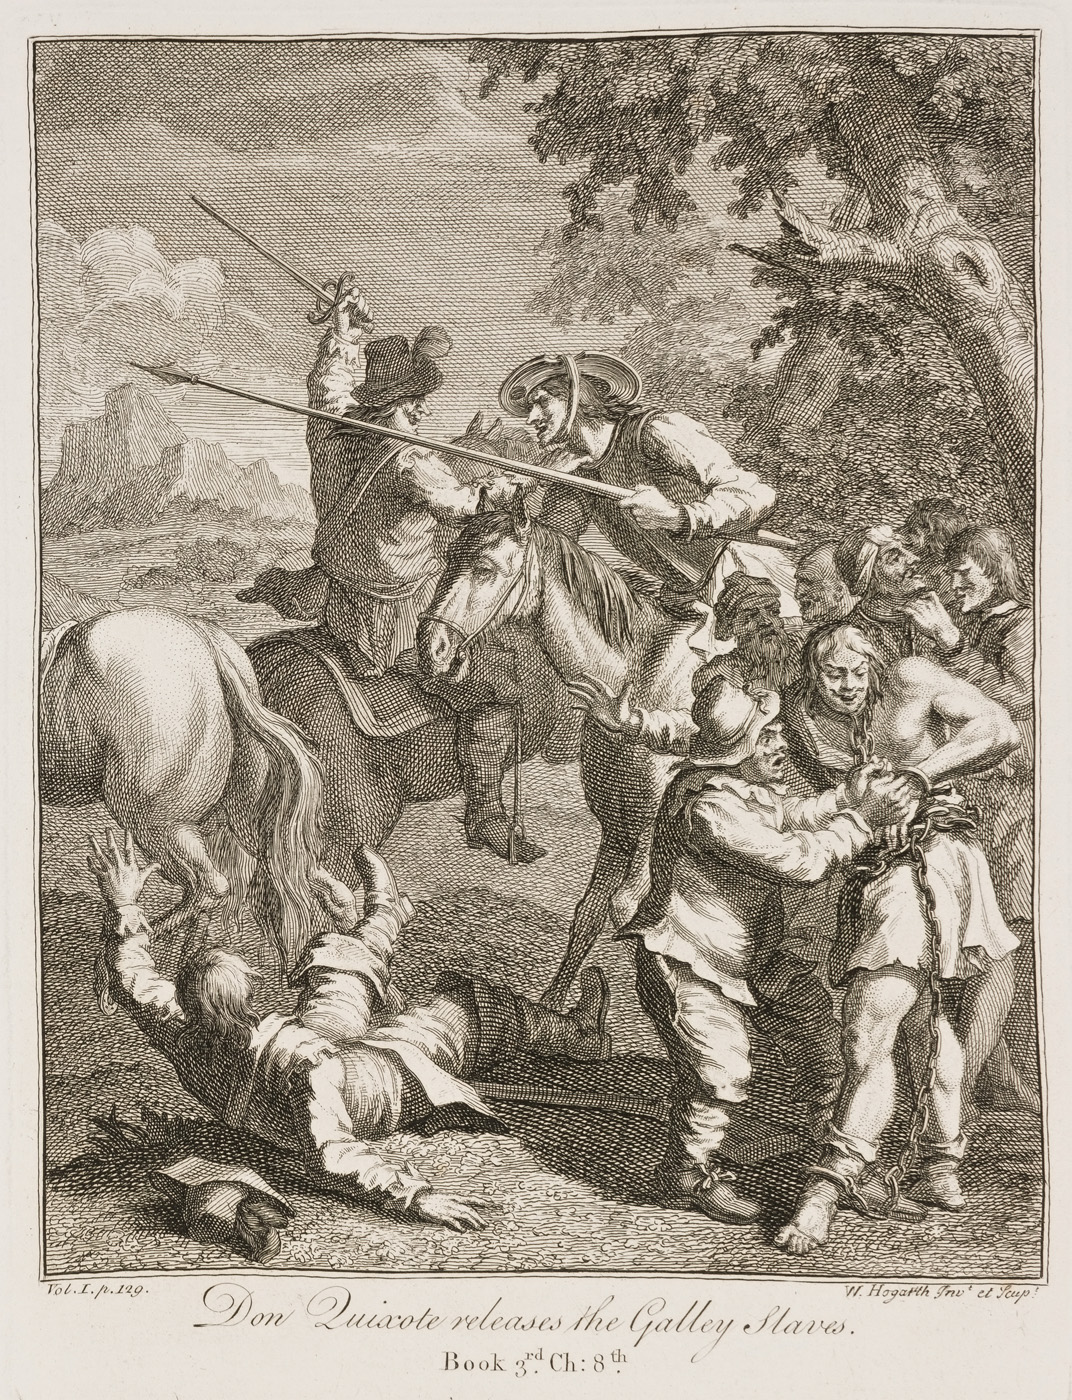 William Hogarth - Don Quixote III